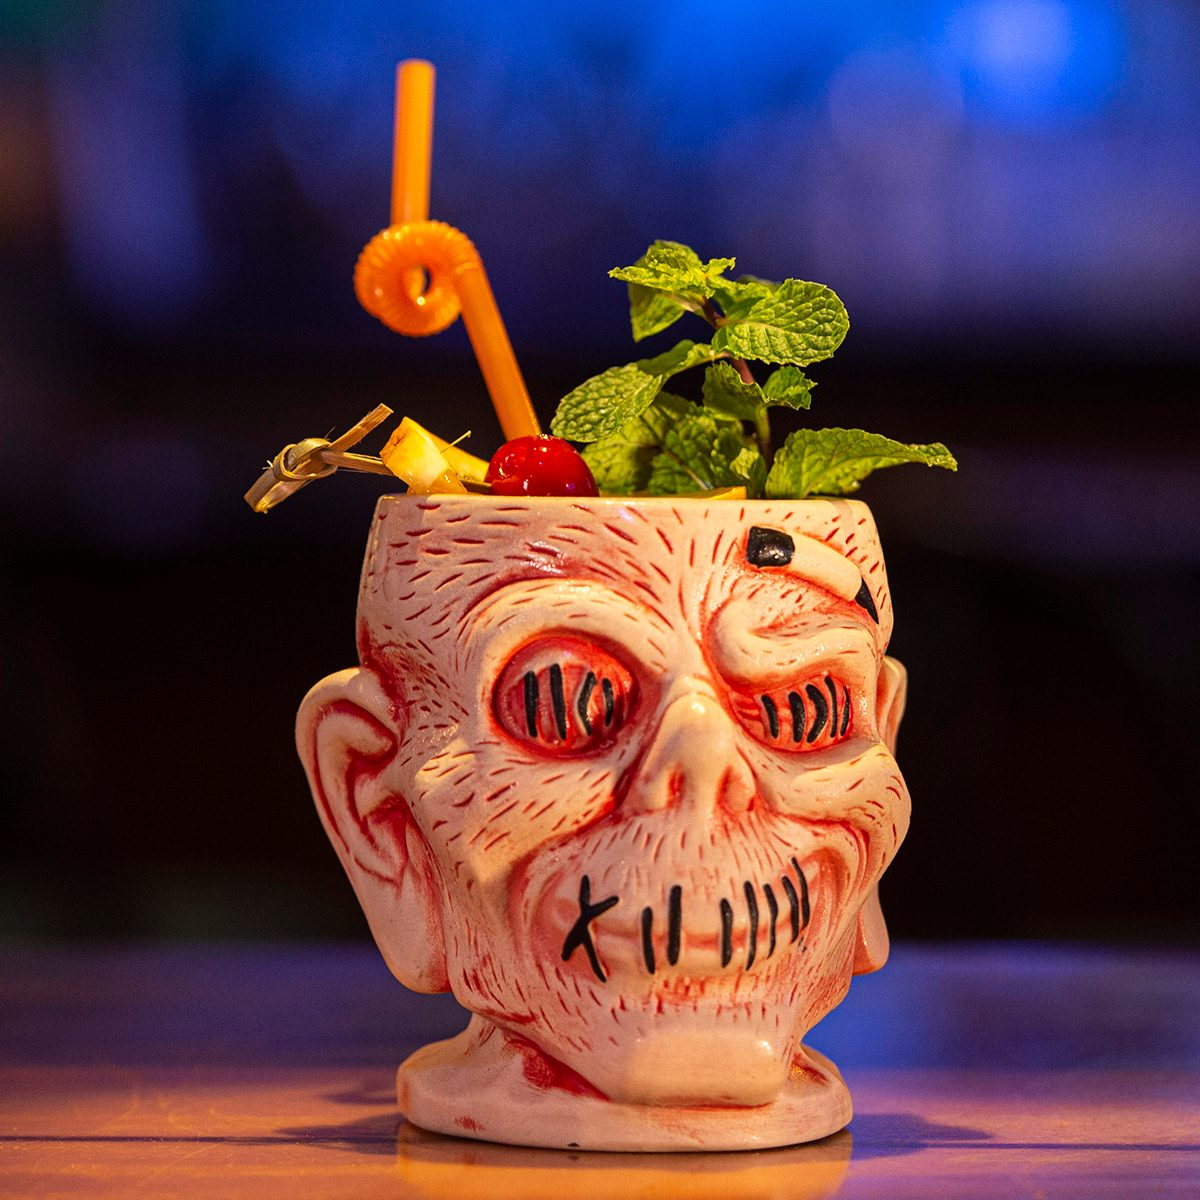 Zombie Head souvenir cup from Trader Sam's Grog Grotto